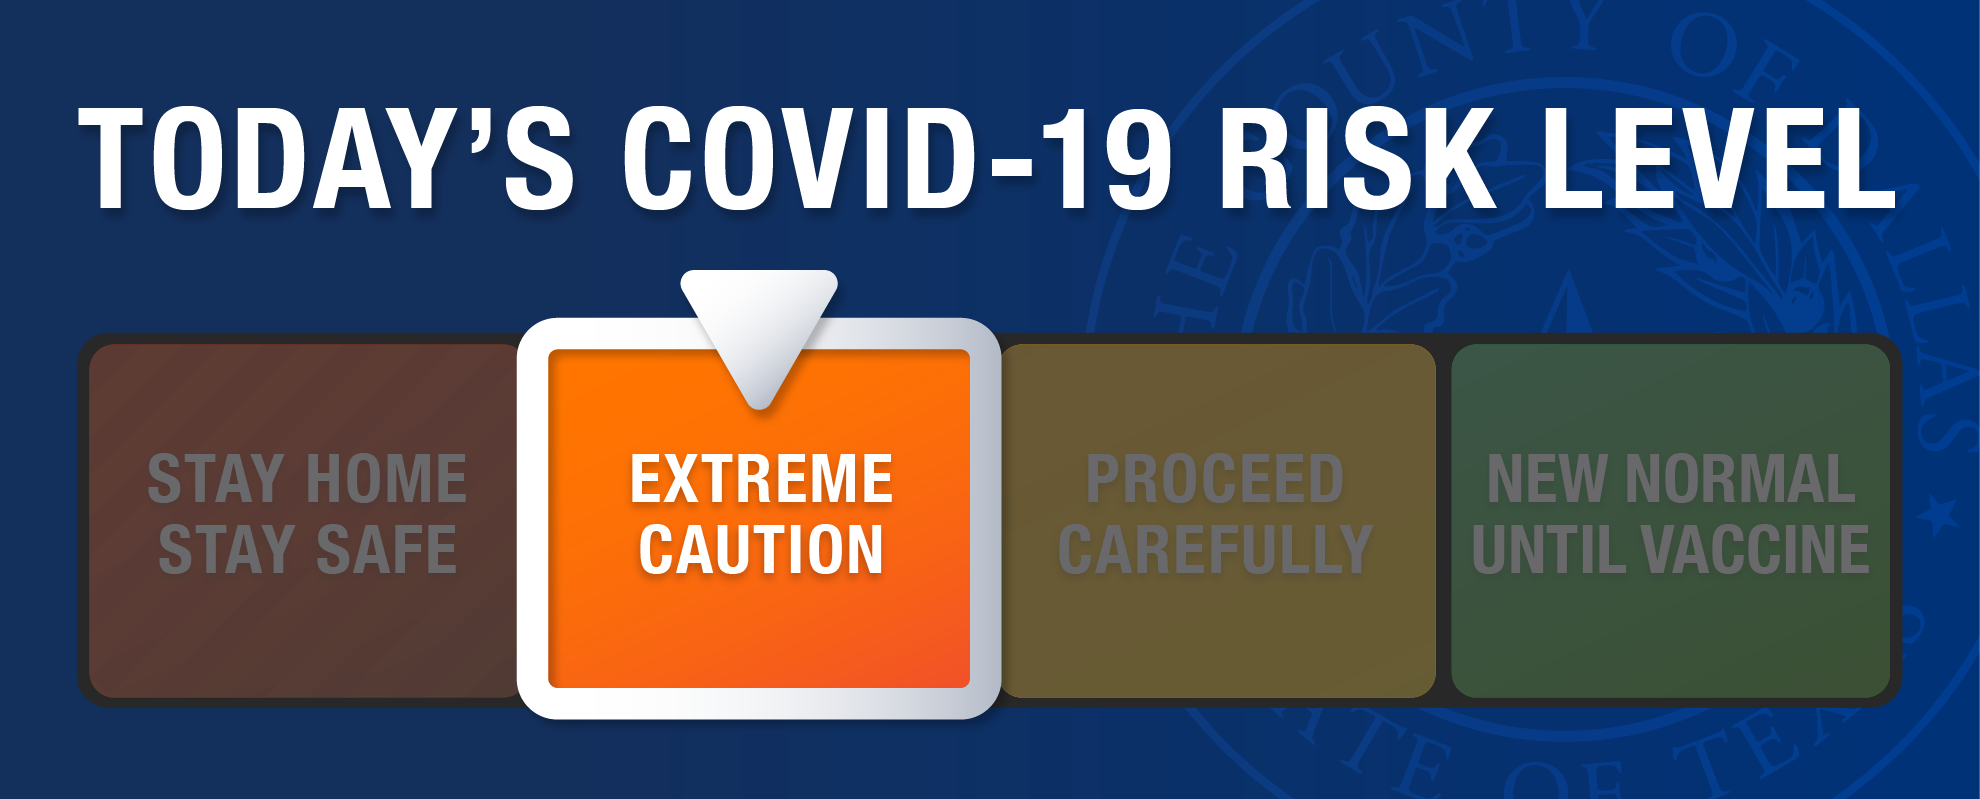 COVID-19 Risk Level - Extreme Caution